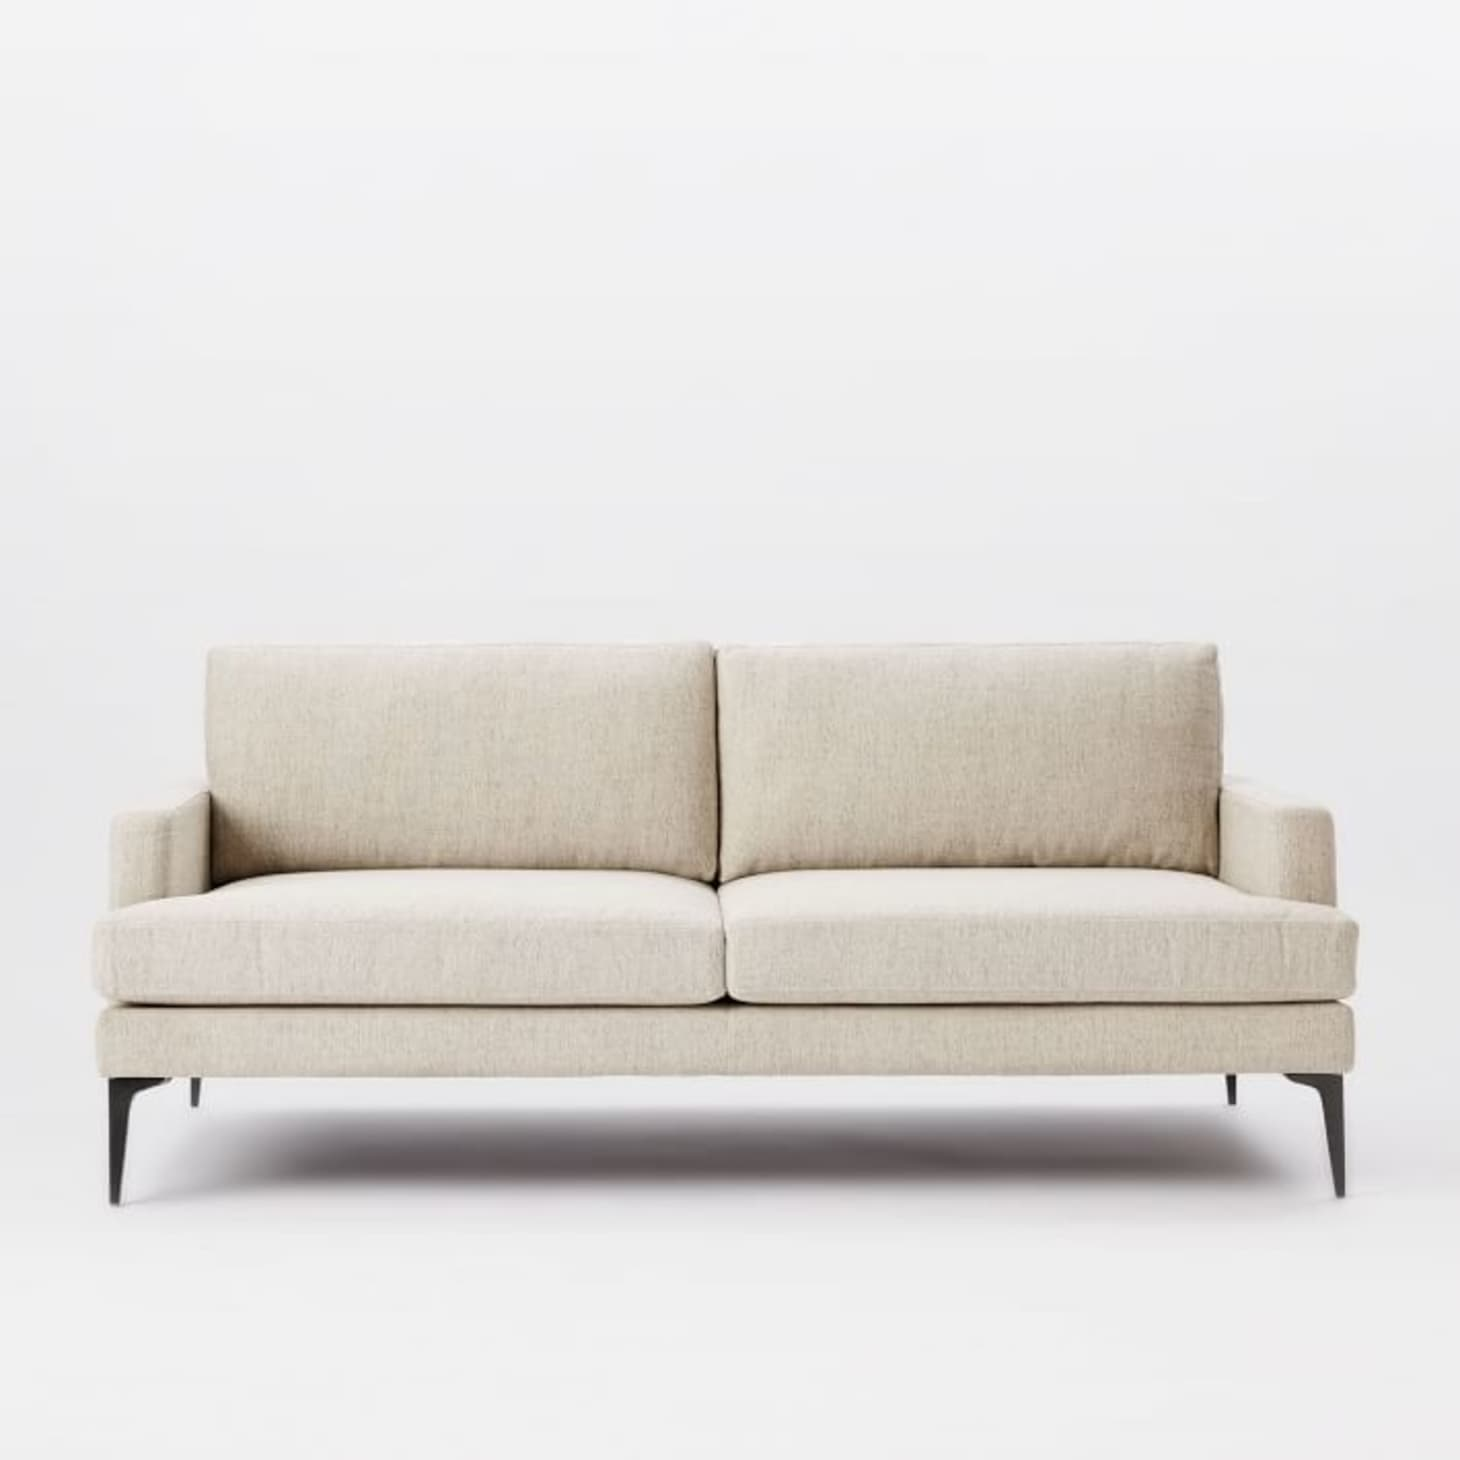 Marvelous The Most Comfortable Sofas At West Elm Tested Reviewed Caraccident5 Cool Chair Designs And Ideas Caraccident5Info